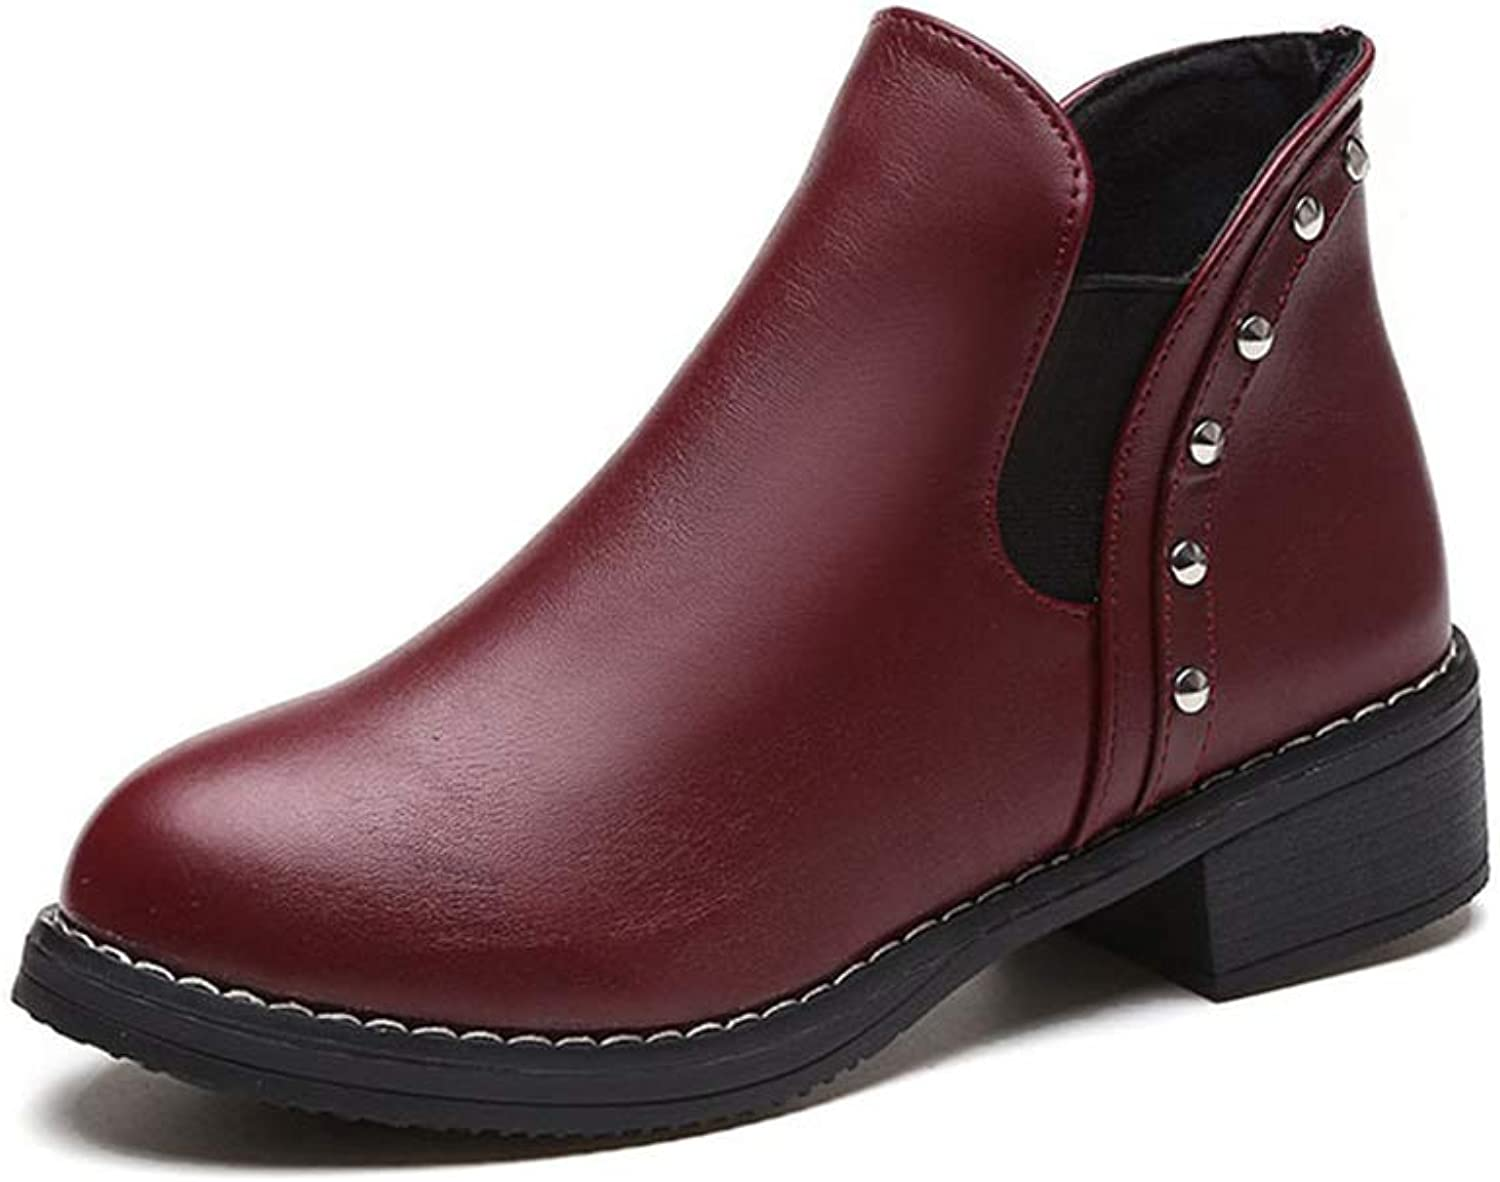 Casual Western Ankle Bootie Comfortable Closed Toe shoes Low Heel Slip on Boot